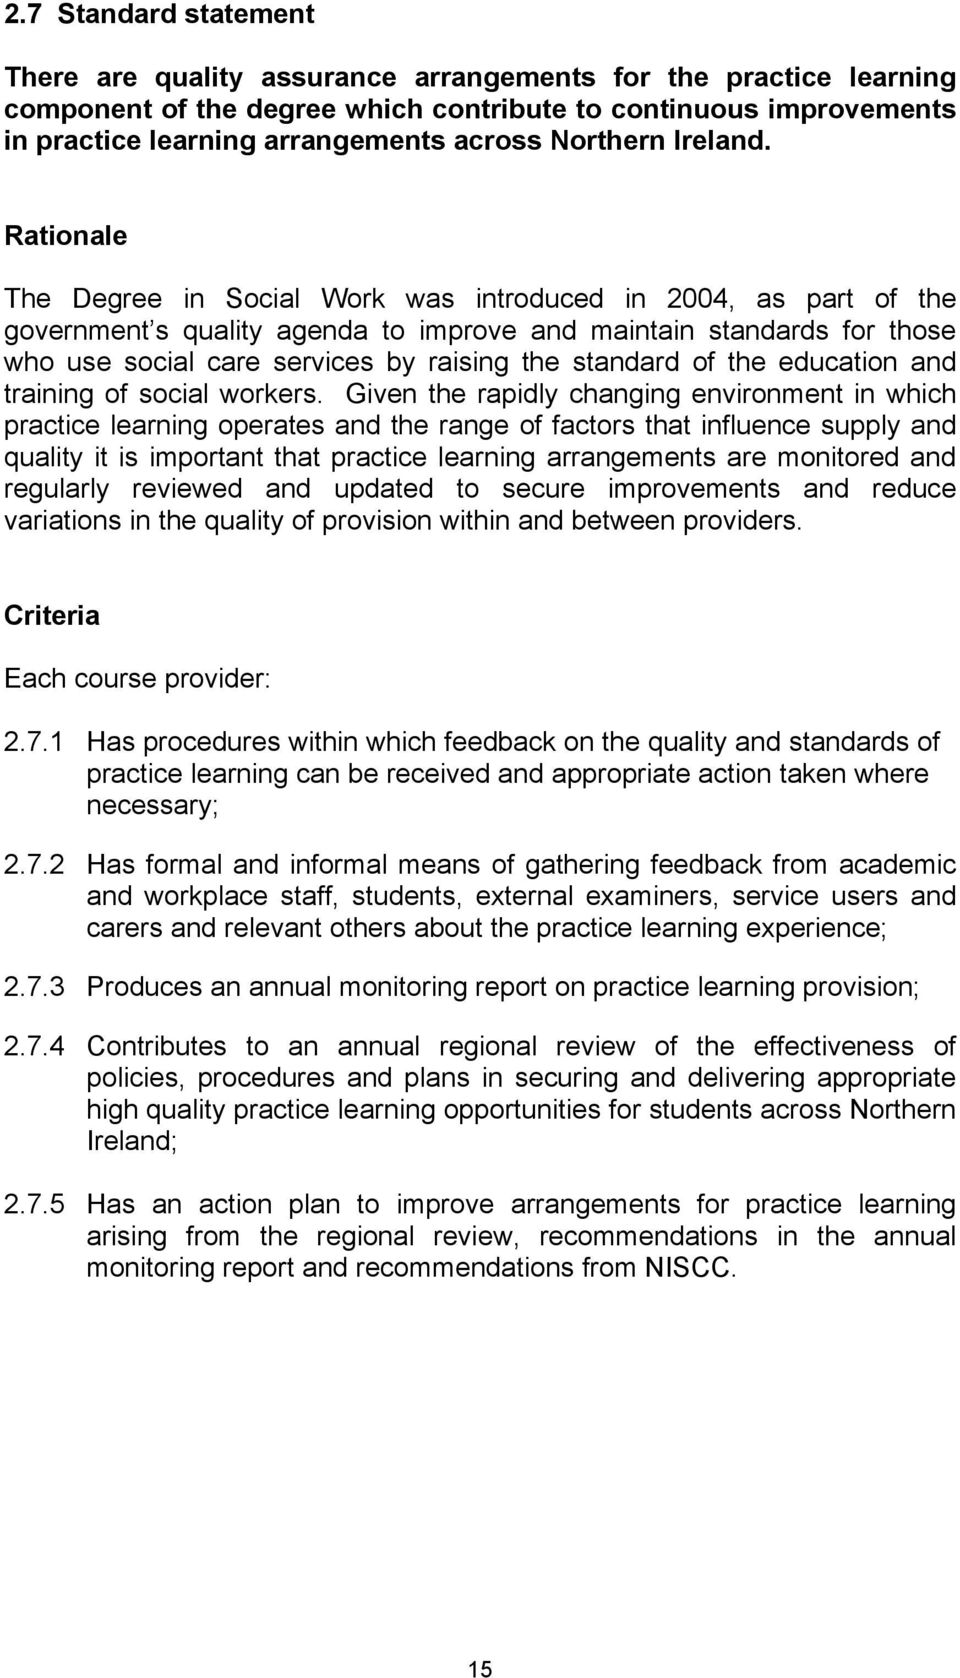 Rationale The Degree in Social Work was introduced in 2004, as part of the government s quality agenda to improve and maintain standards for those who use social care services by raising the standard